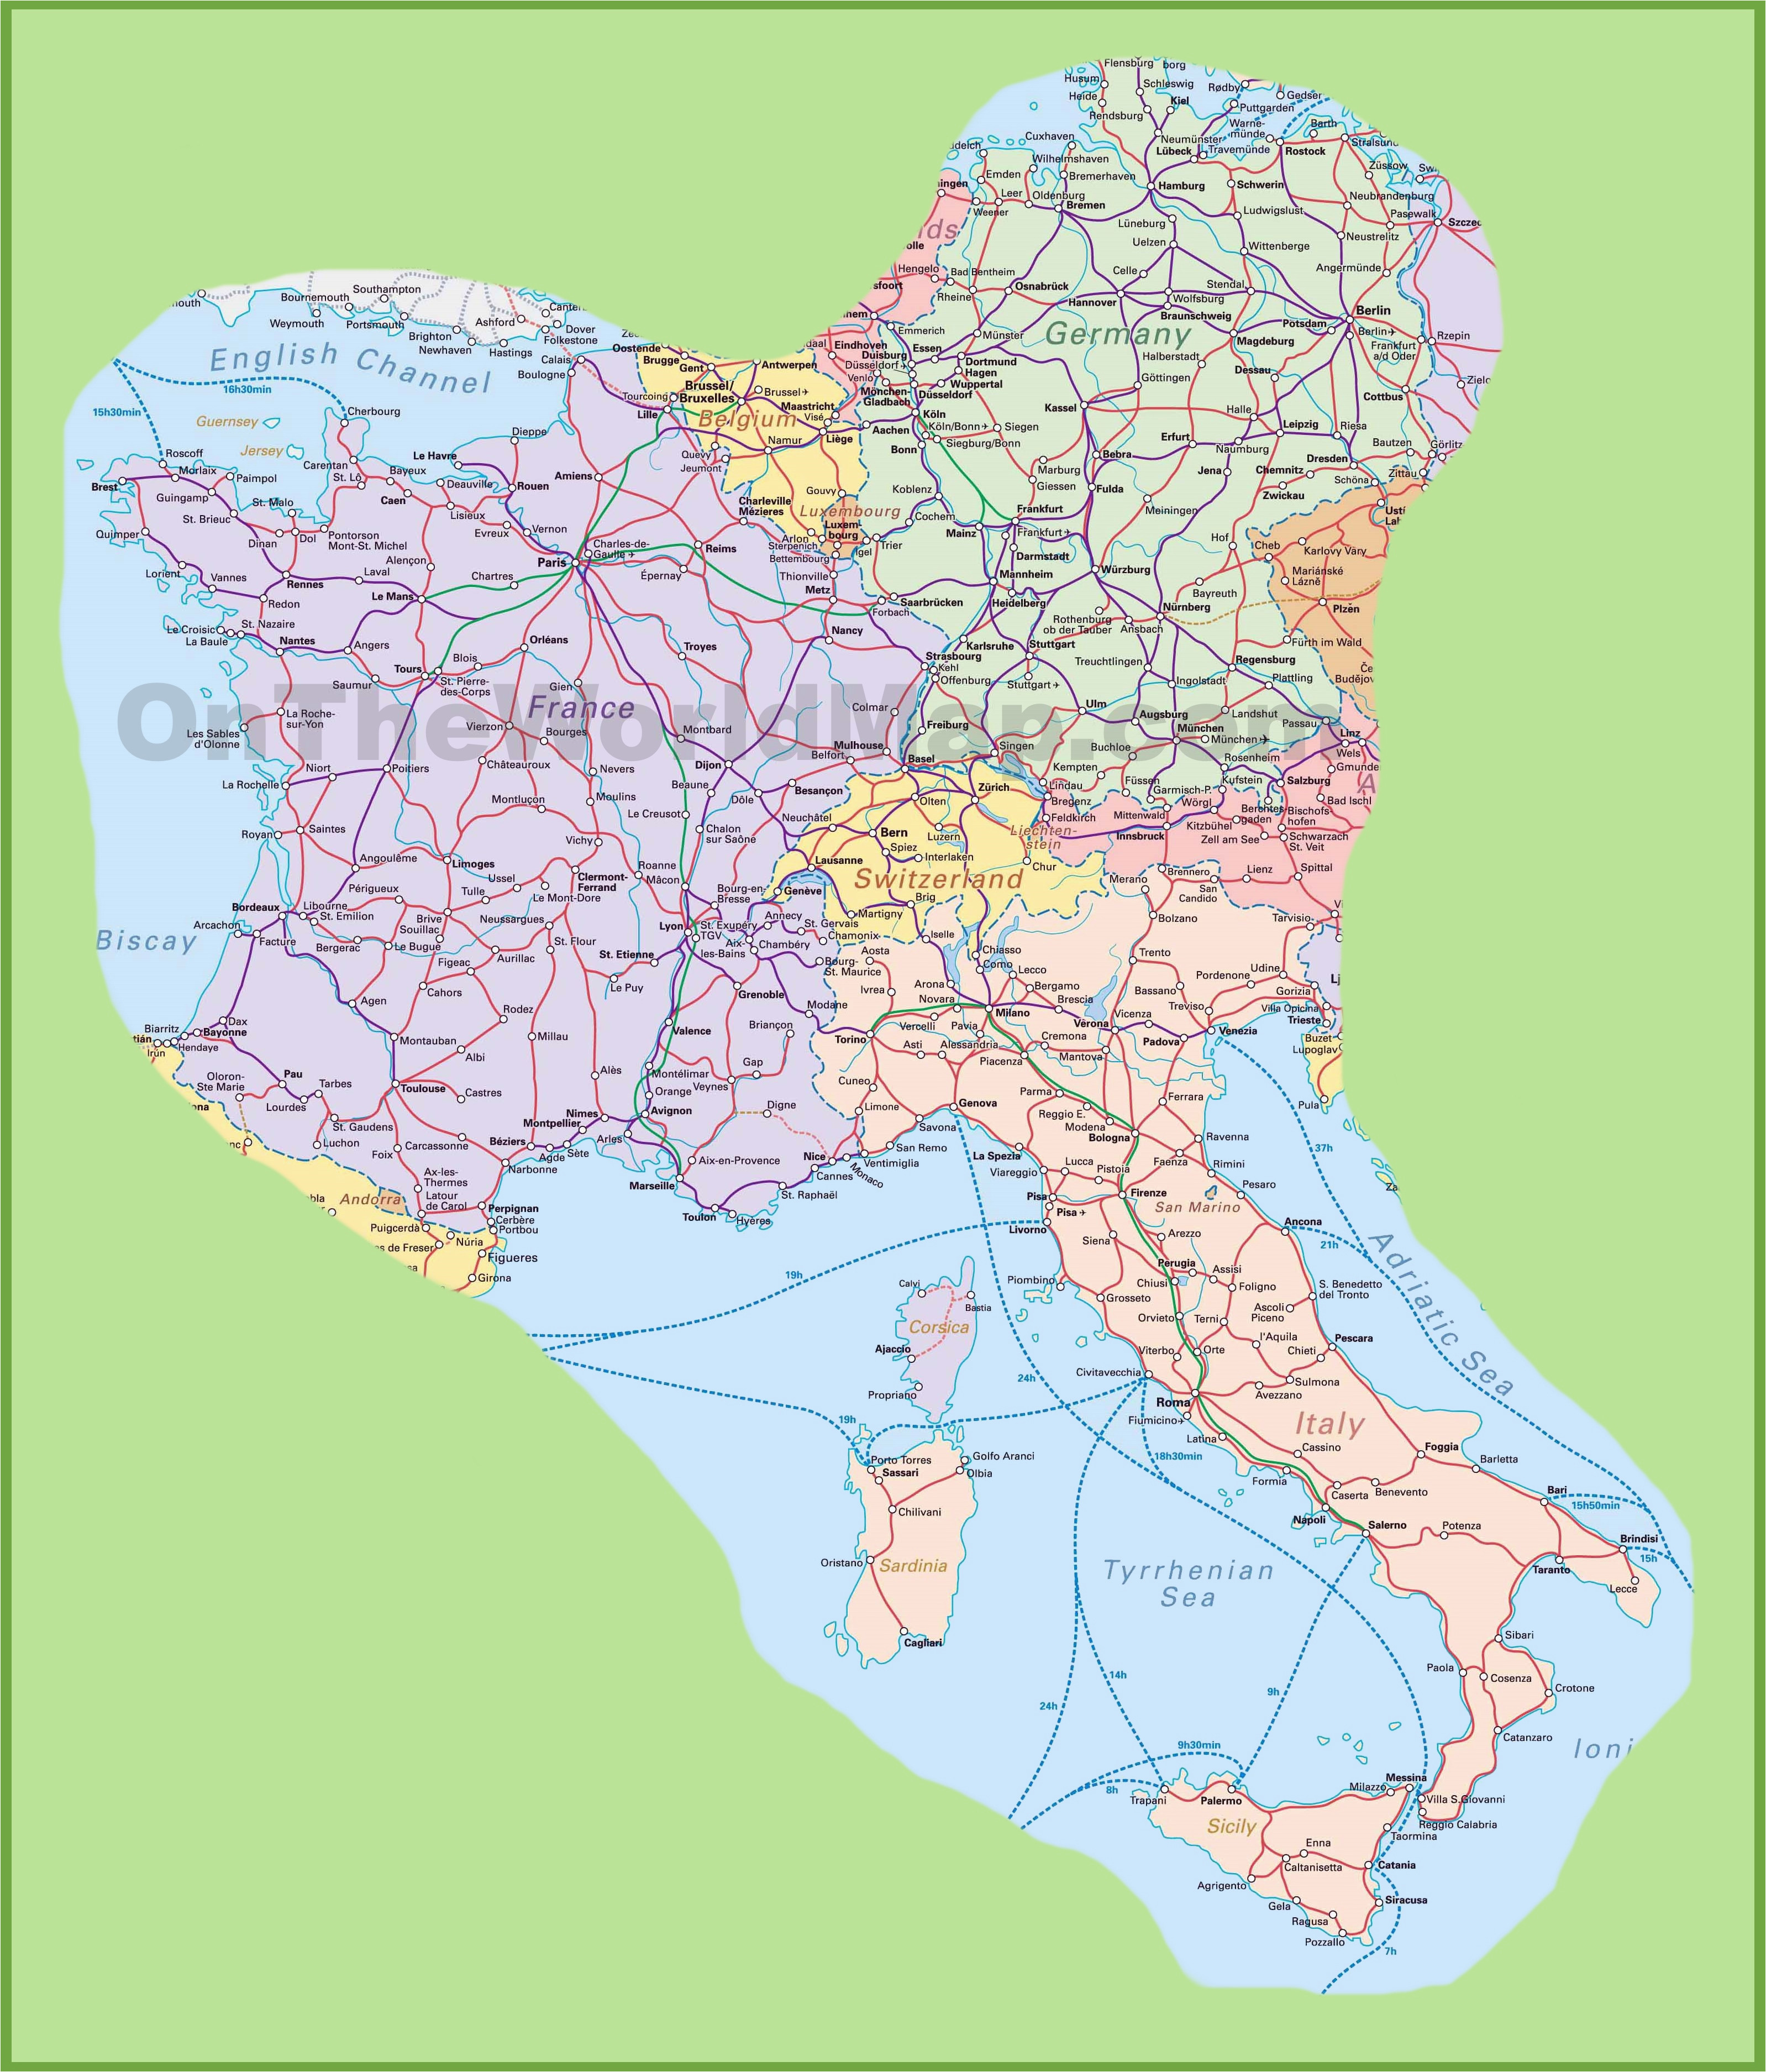 map of switzerland italy germany and france